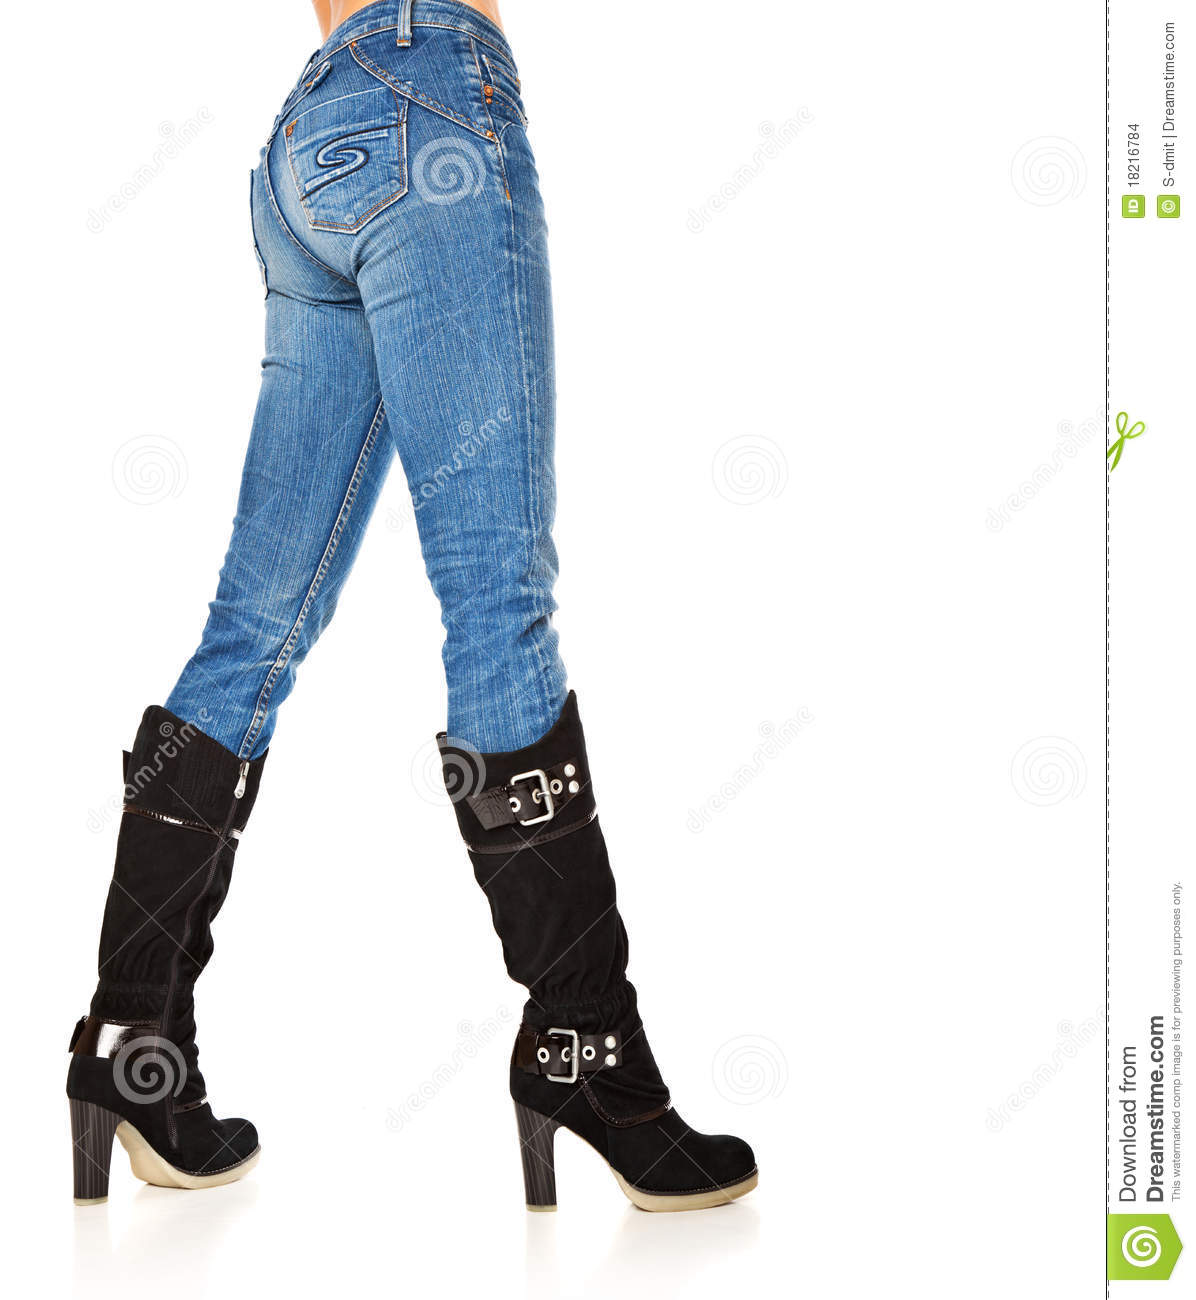 Female legs in a blue jeans and high boots